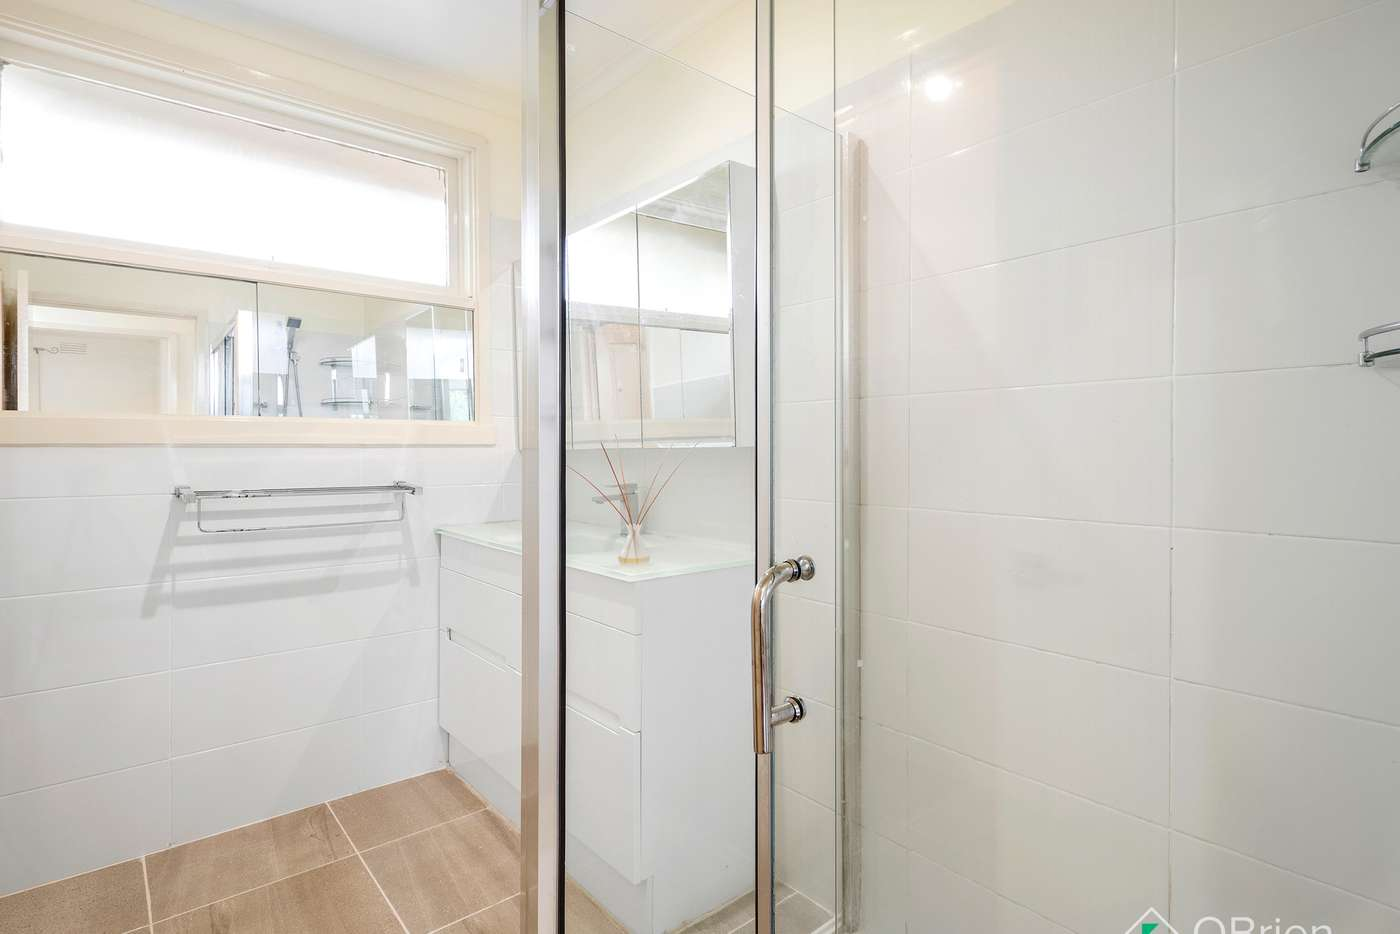 Sixth view of Homely house listing, 23 Railway Road, Baxter VIC 3911